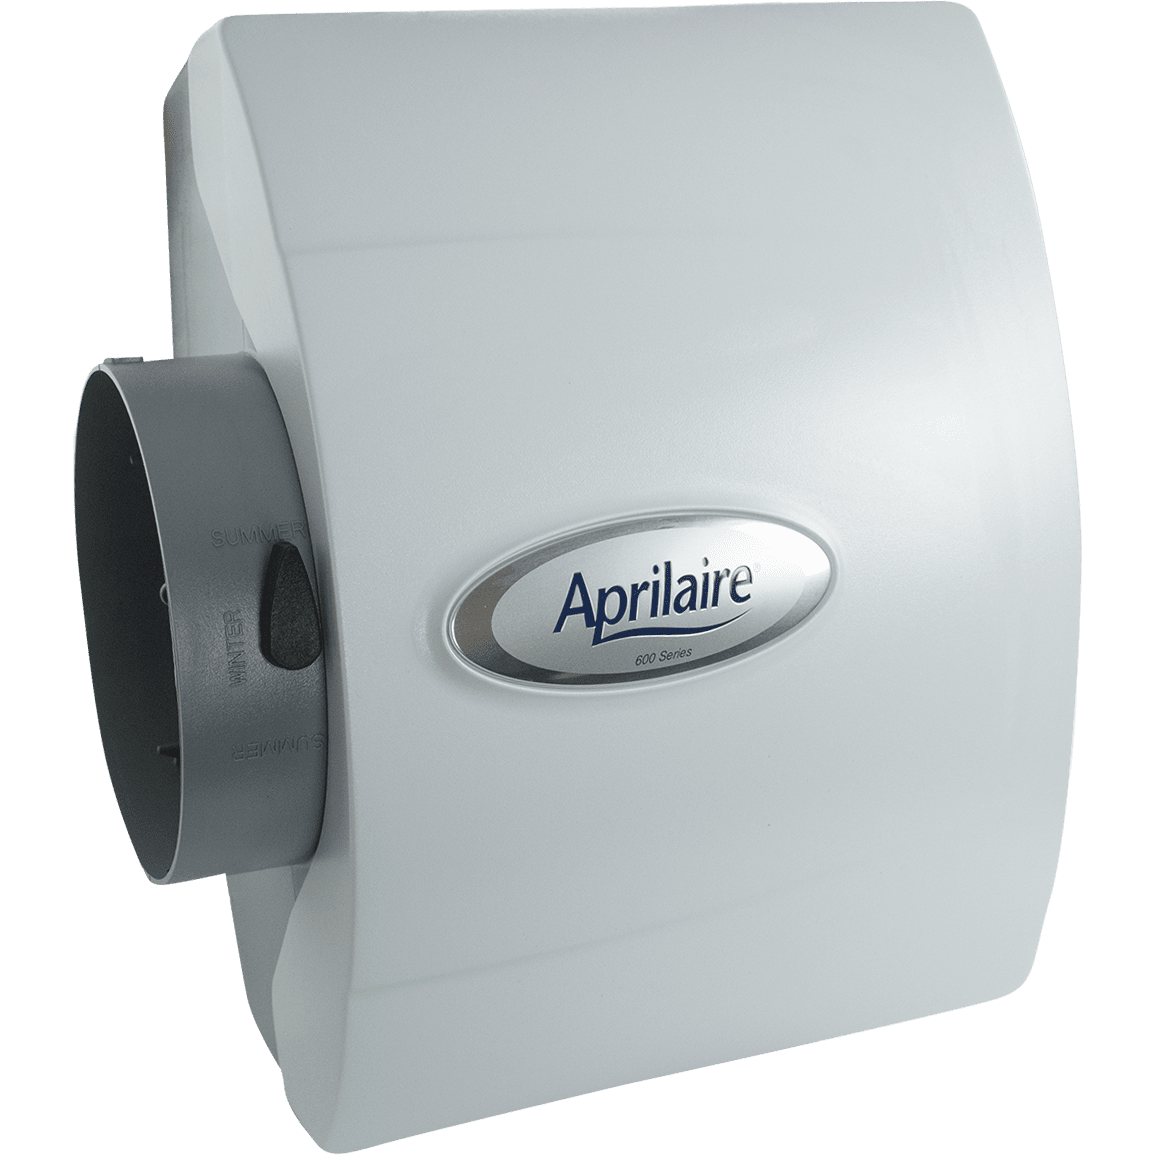 Aprilaire Model 600 Large Whole House Humidifiers Sylvane #4B5158